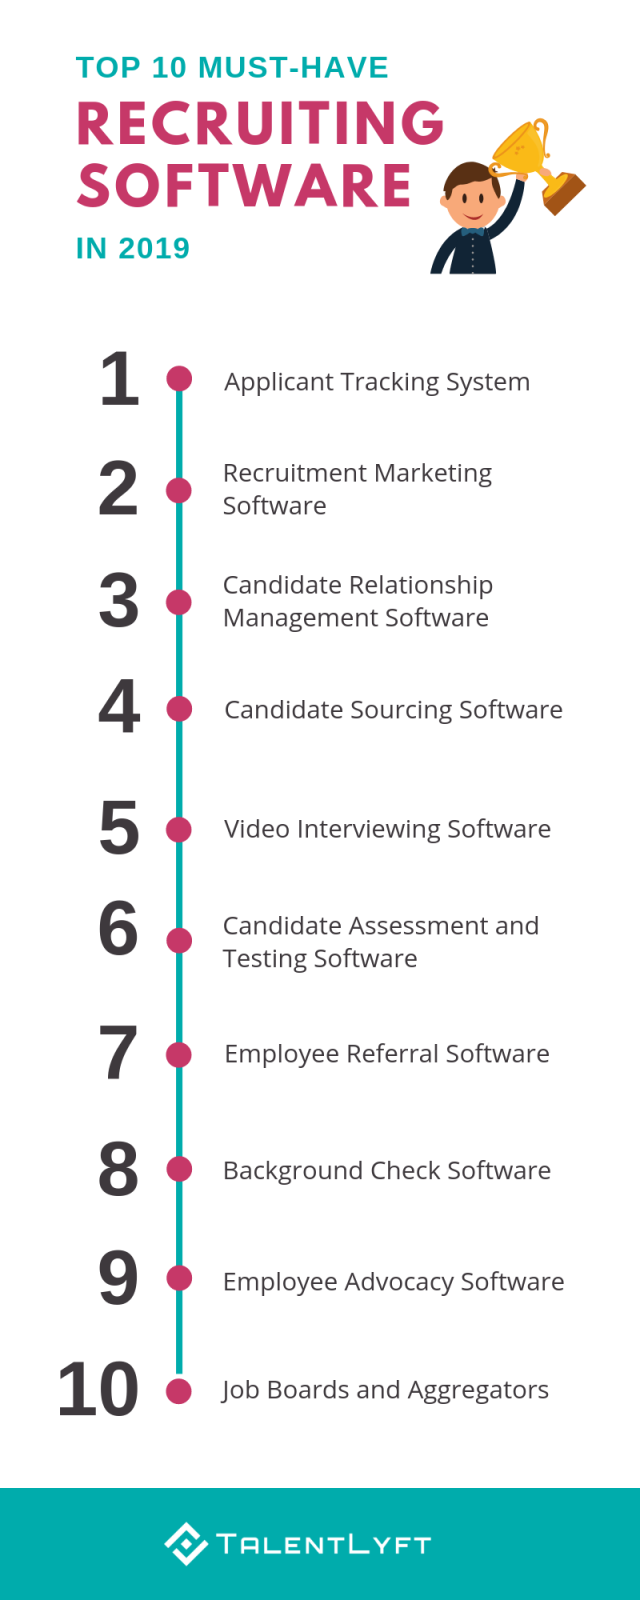 top-10-must-have-recruiting-software-2019.png